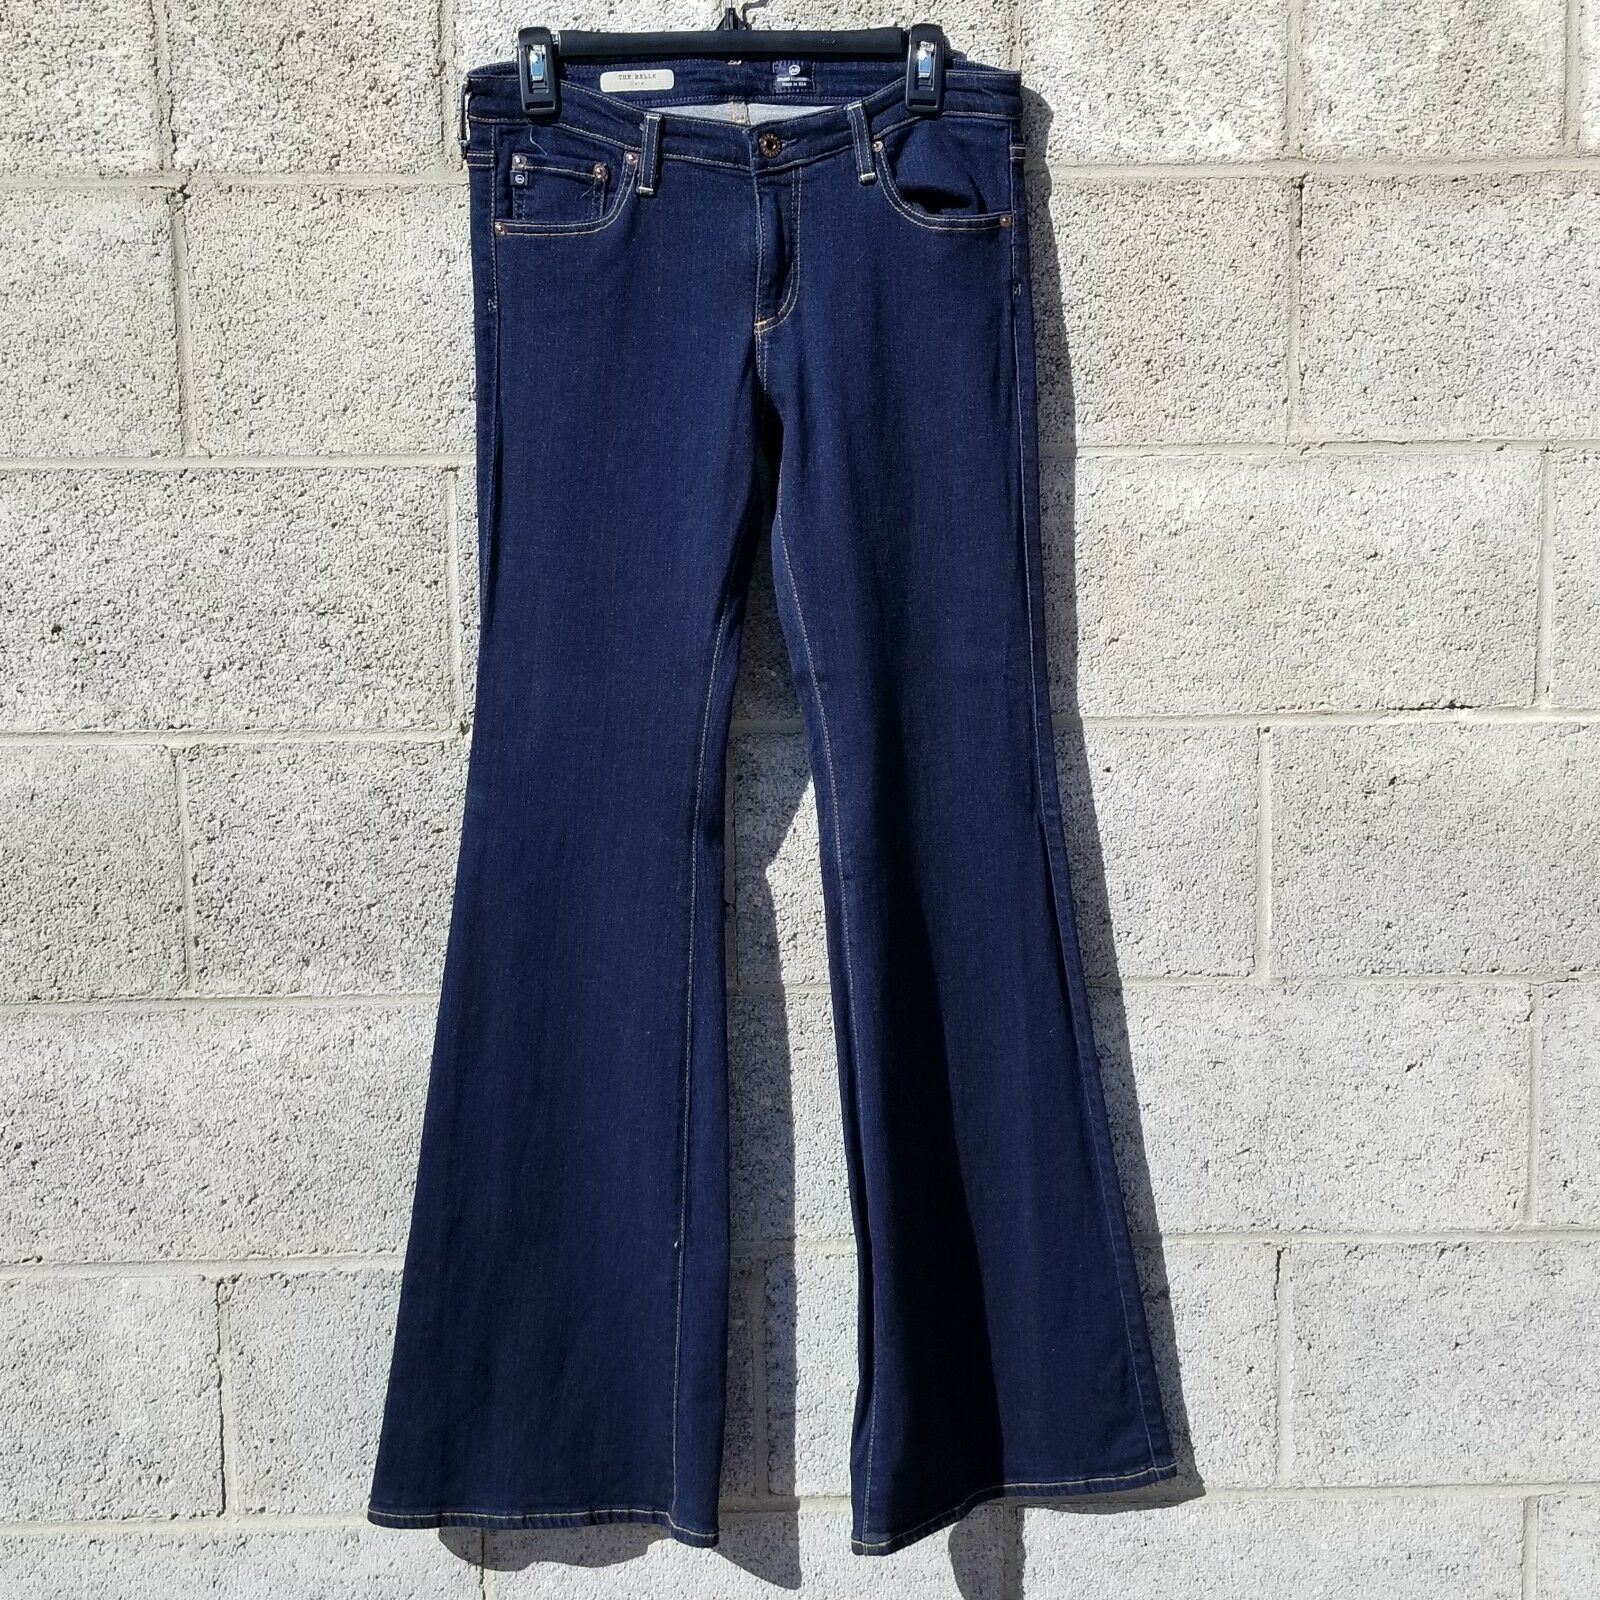 C2 AG Adriano goldschmied Jeans Belle Petite Flares SIZE 30R